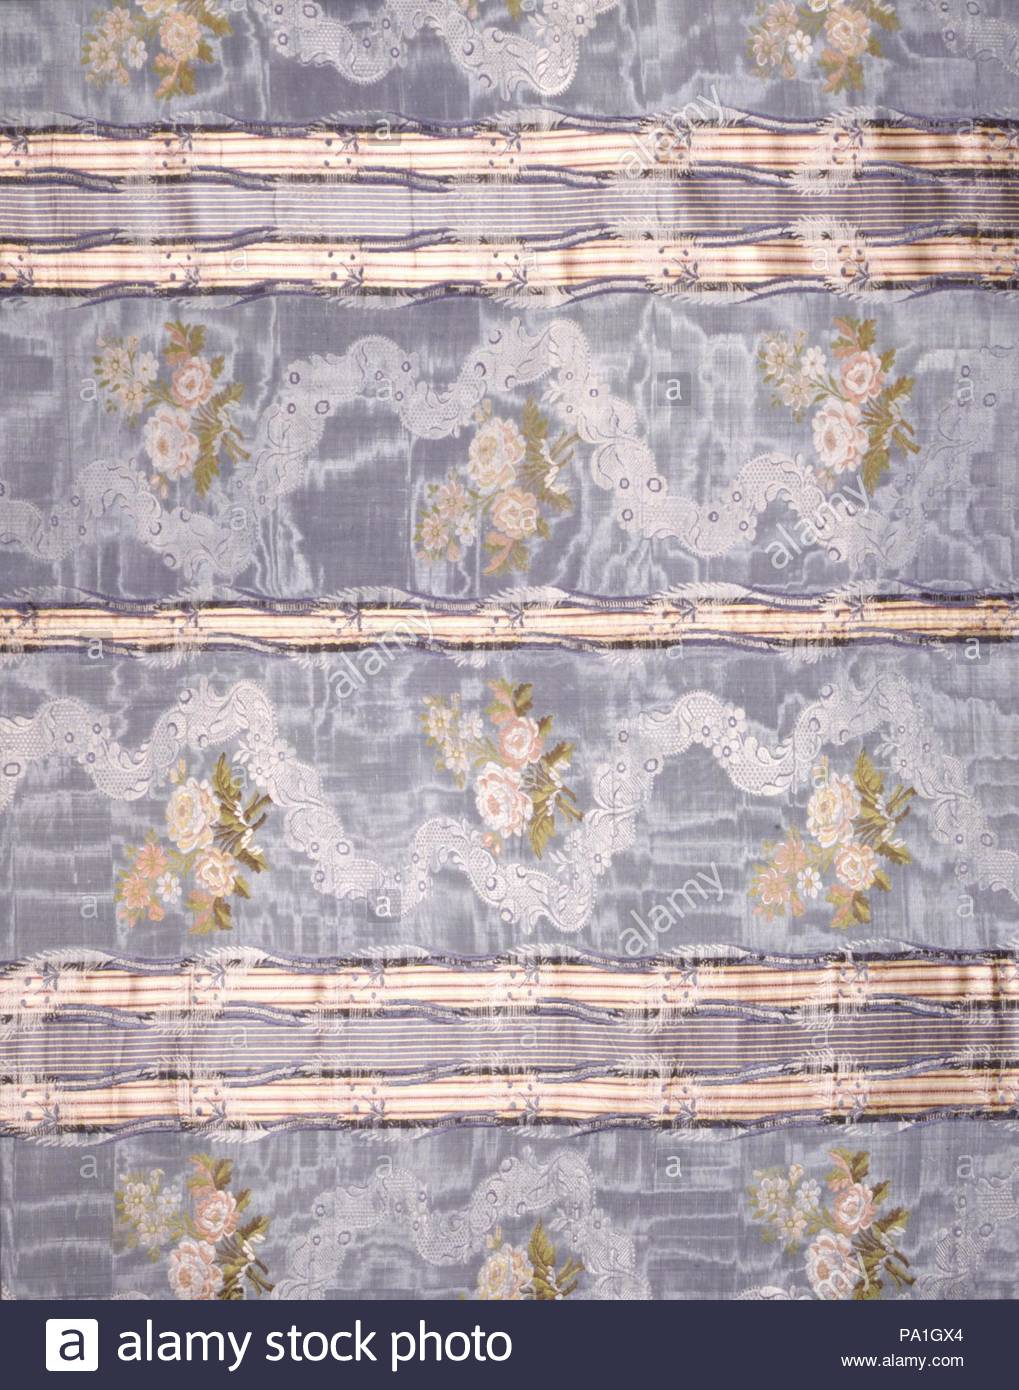 Cover or Hanging, 18th century (?), Spanish (?), Silk, 108 1/2 x 80 in. (278.5 x 205.7 cm), Textiles-Ecclesiastical. - Stock Image